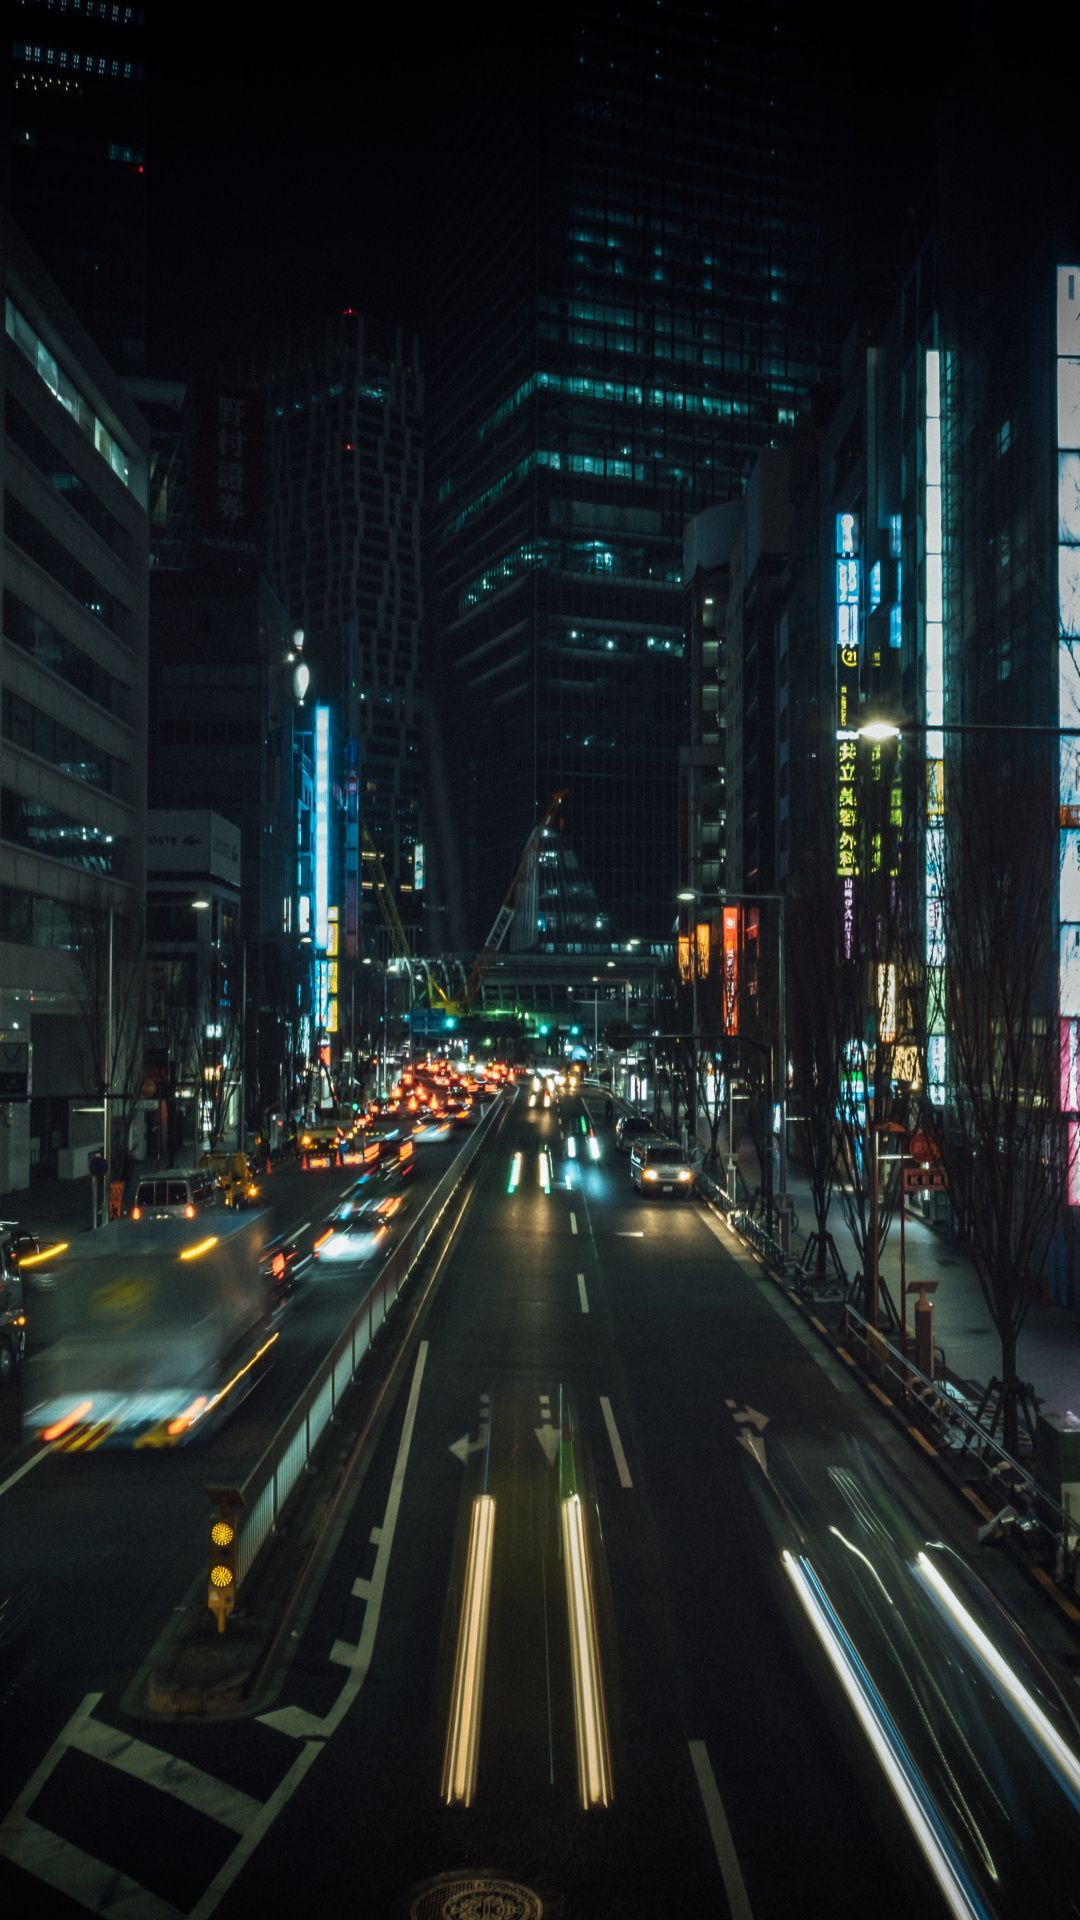 Wallpapers Architecture City Street Road Urban Area City City Background City Pictures City buildings road cars night street